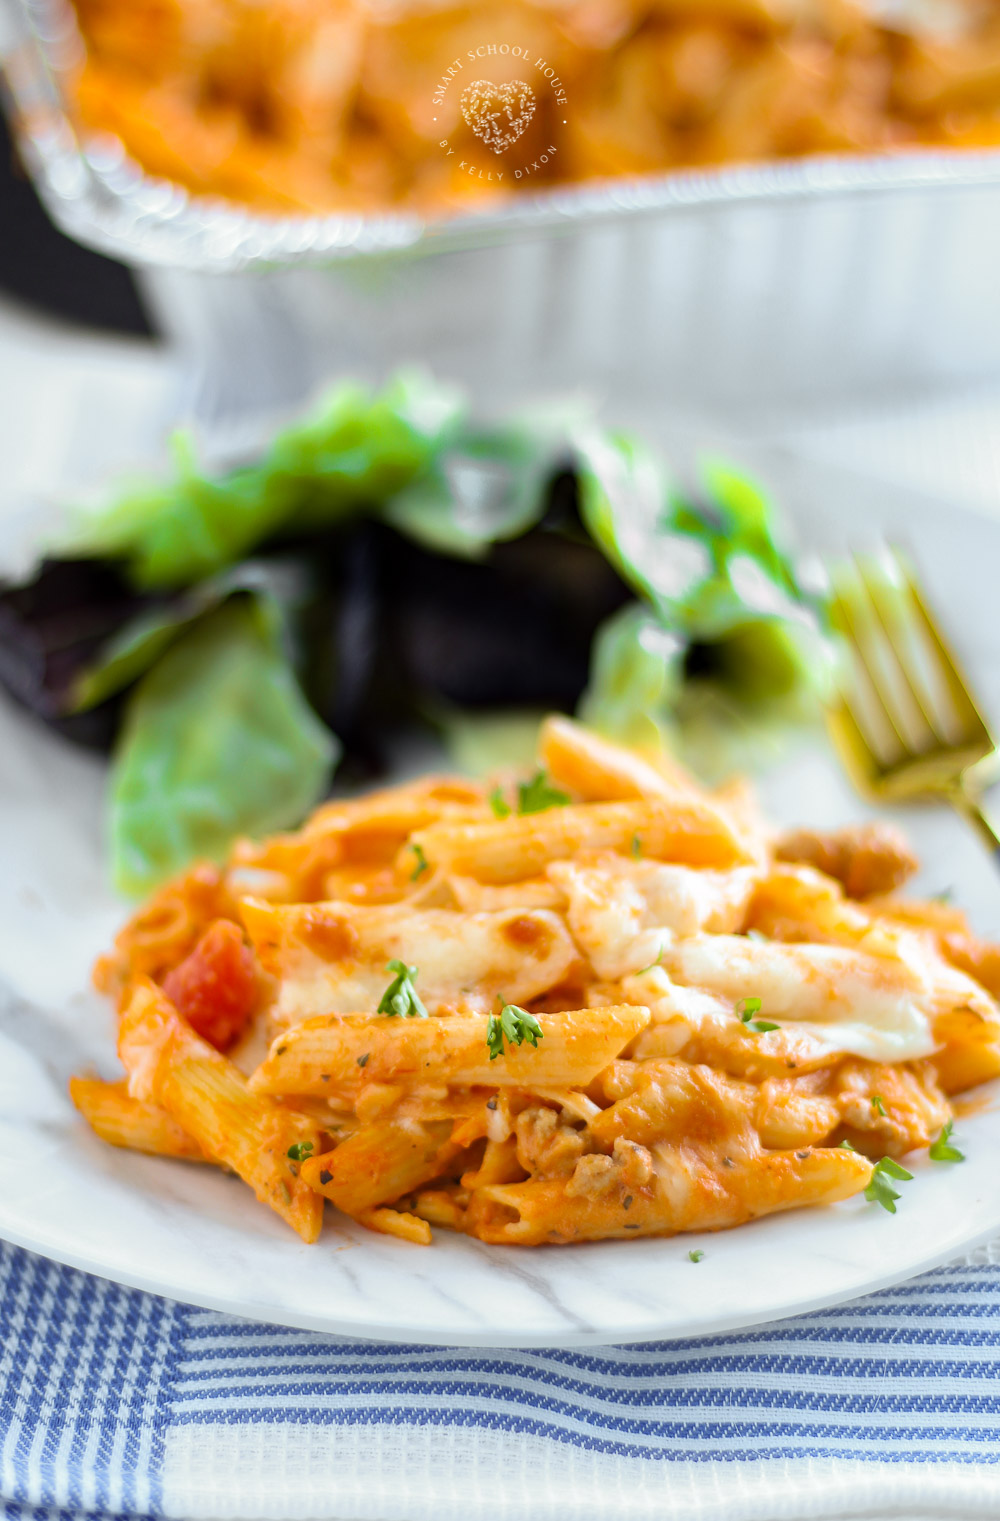 If you are searching for the perfect comfort food recipe, this Pink Pasta Casserole recipe is for you. This delicious dinner recipe is so easy to make. This creamy, cheesy pink pasta recipe is an easy weeknight dinner that the whole family will enjoy. Leftovers are so delicious!